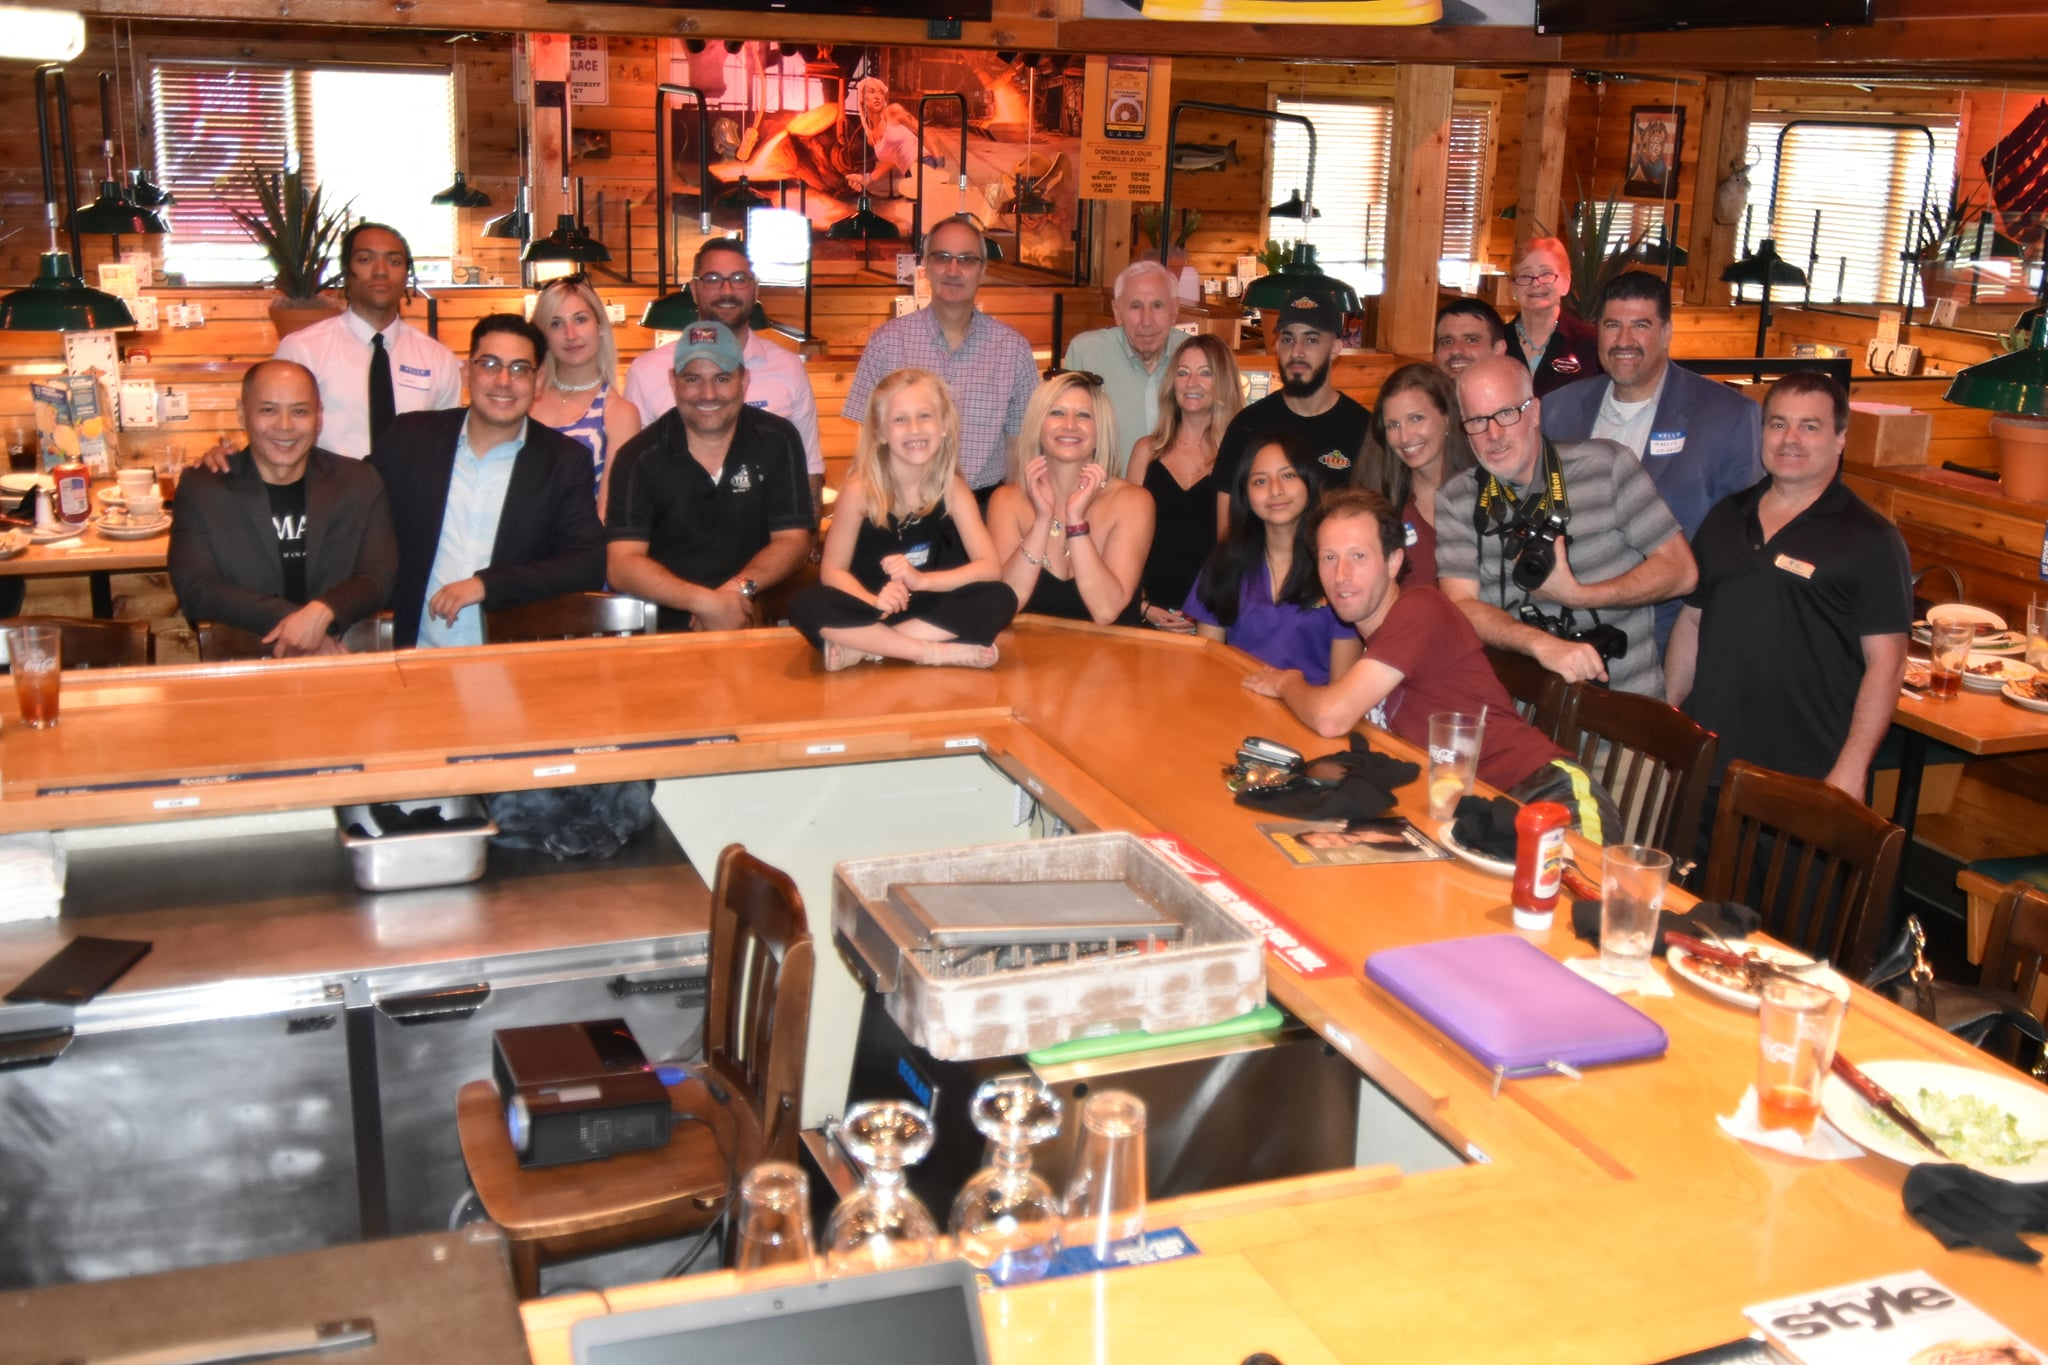 Event: Lehigh Valley Elite Network Texas Roadhouse Business Networking Event - Jul 29 @ 11:00am